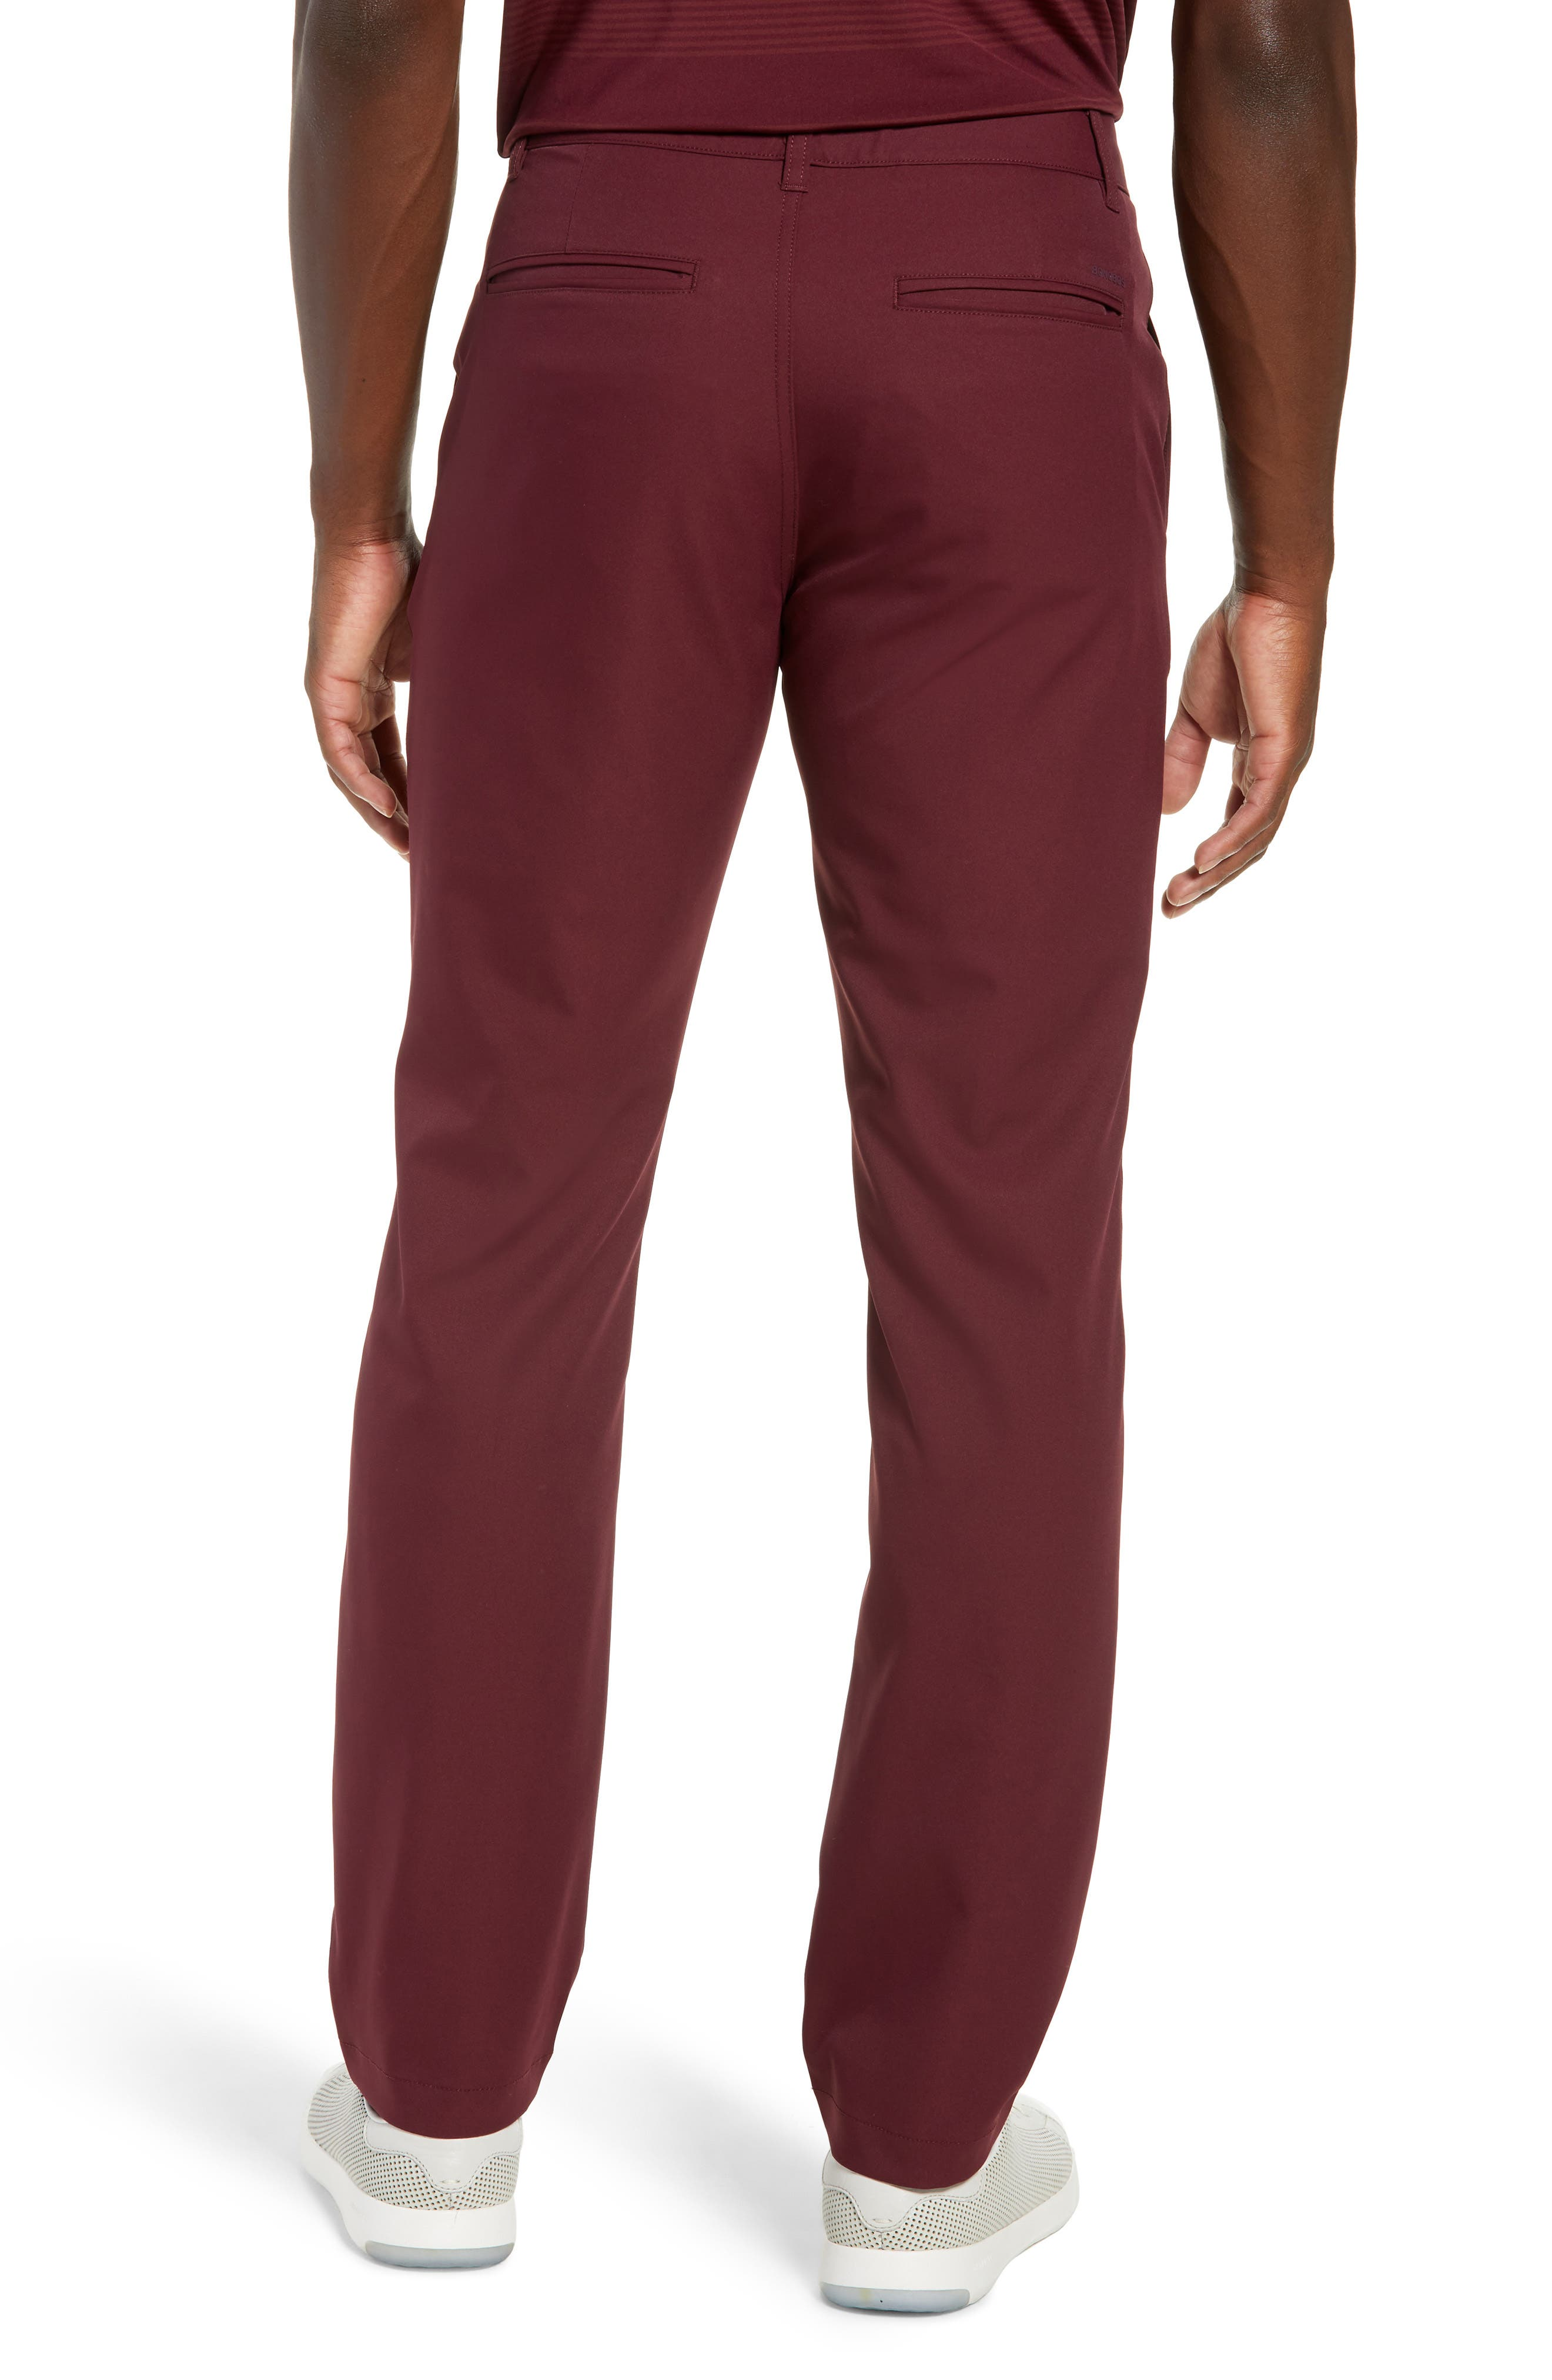 Highland Slim Fit Golf Pants,                             Alternate thumbnail 2, color,                             600